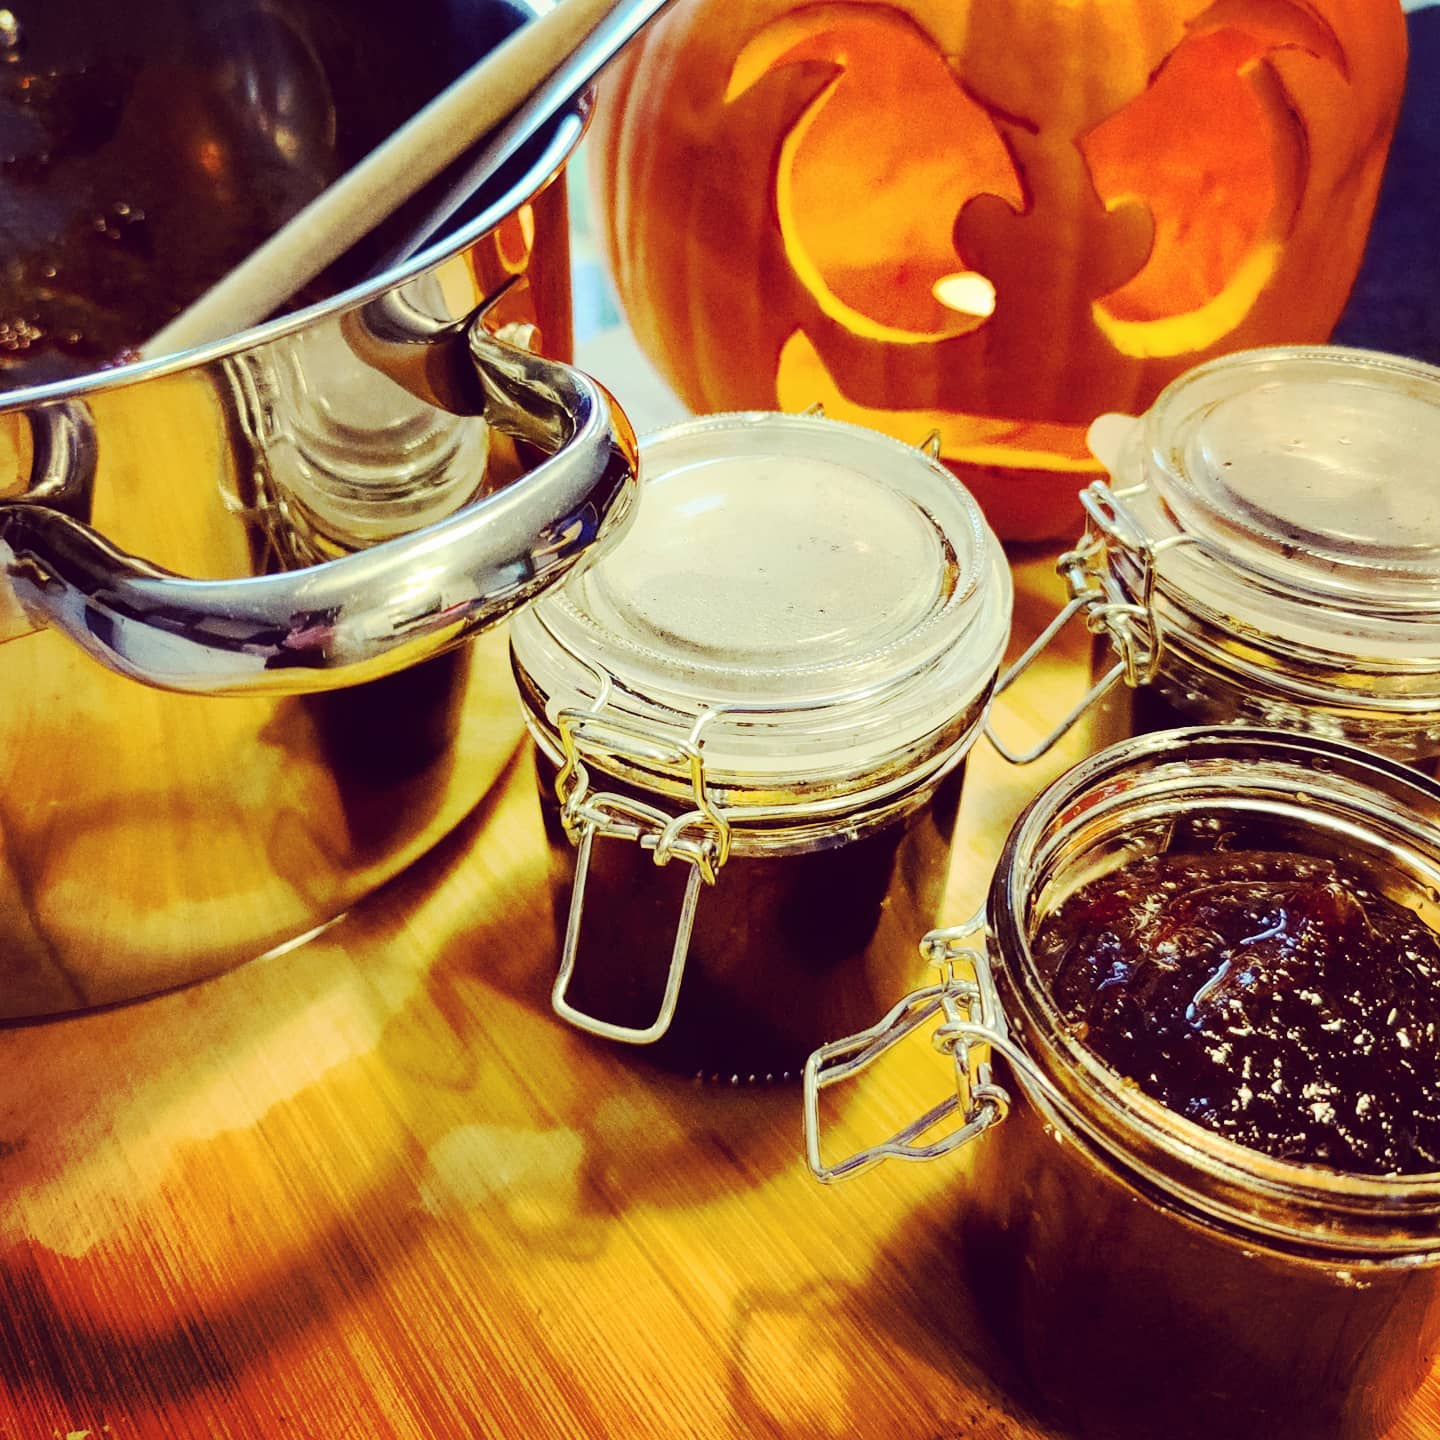 Made some pumpkin jam this year. Tastes a bit like toffee. Not sure if that's good or bad.